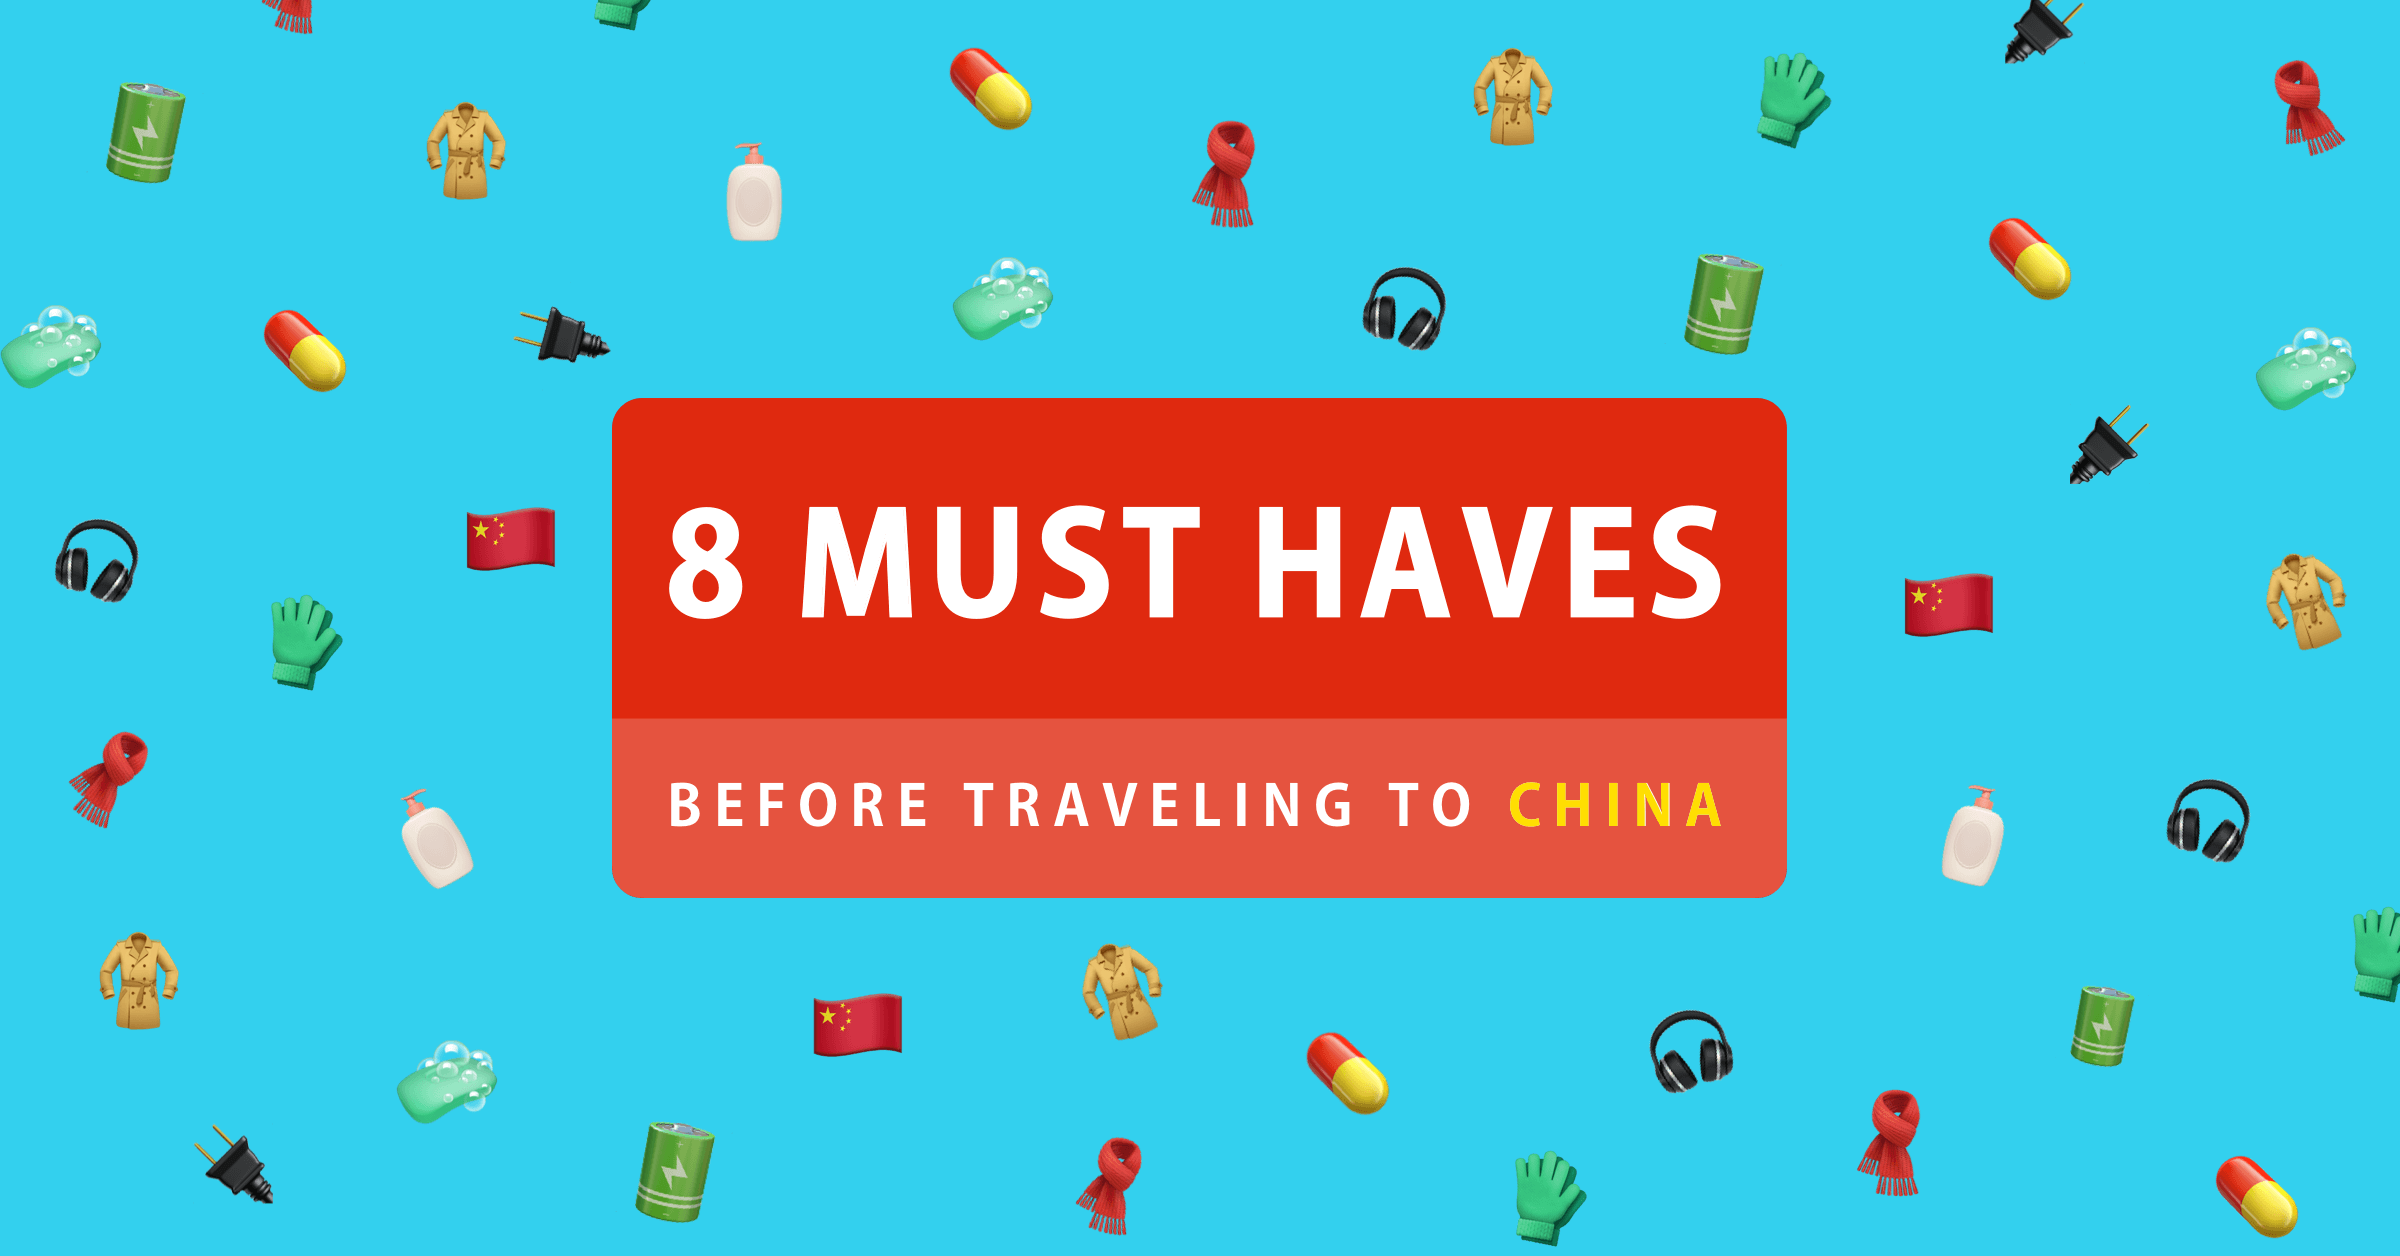 The essential packing list for business travellers going to China